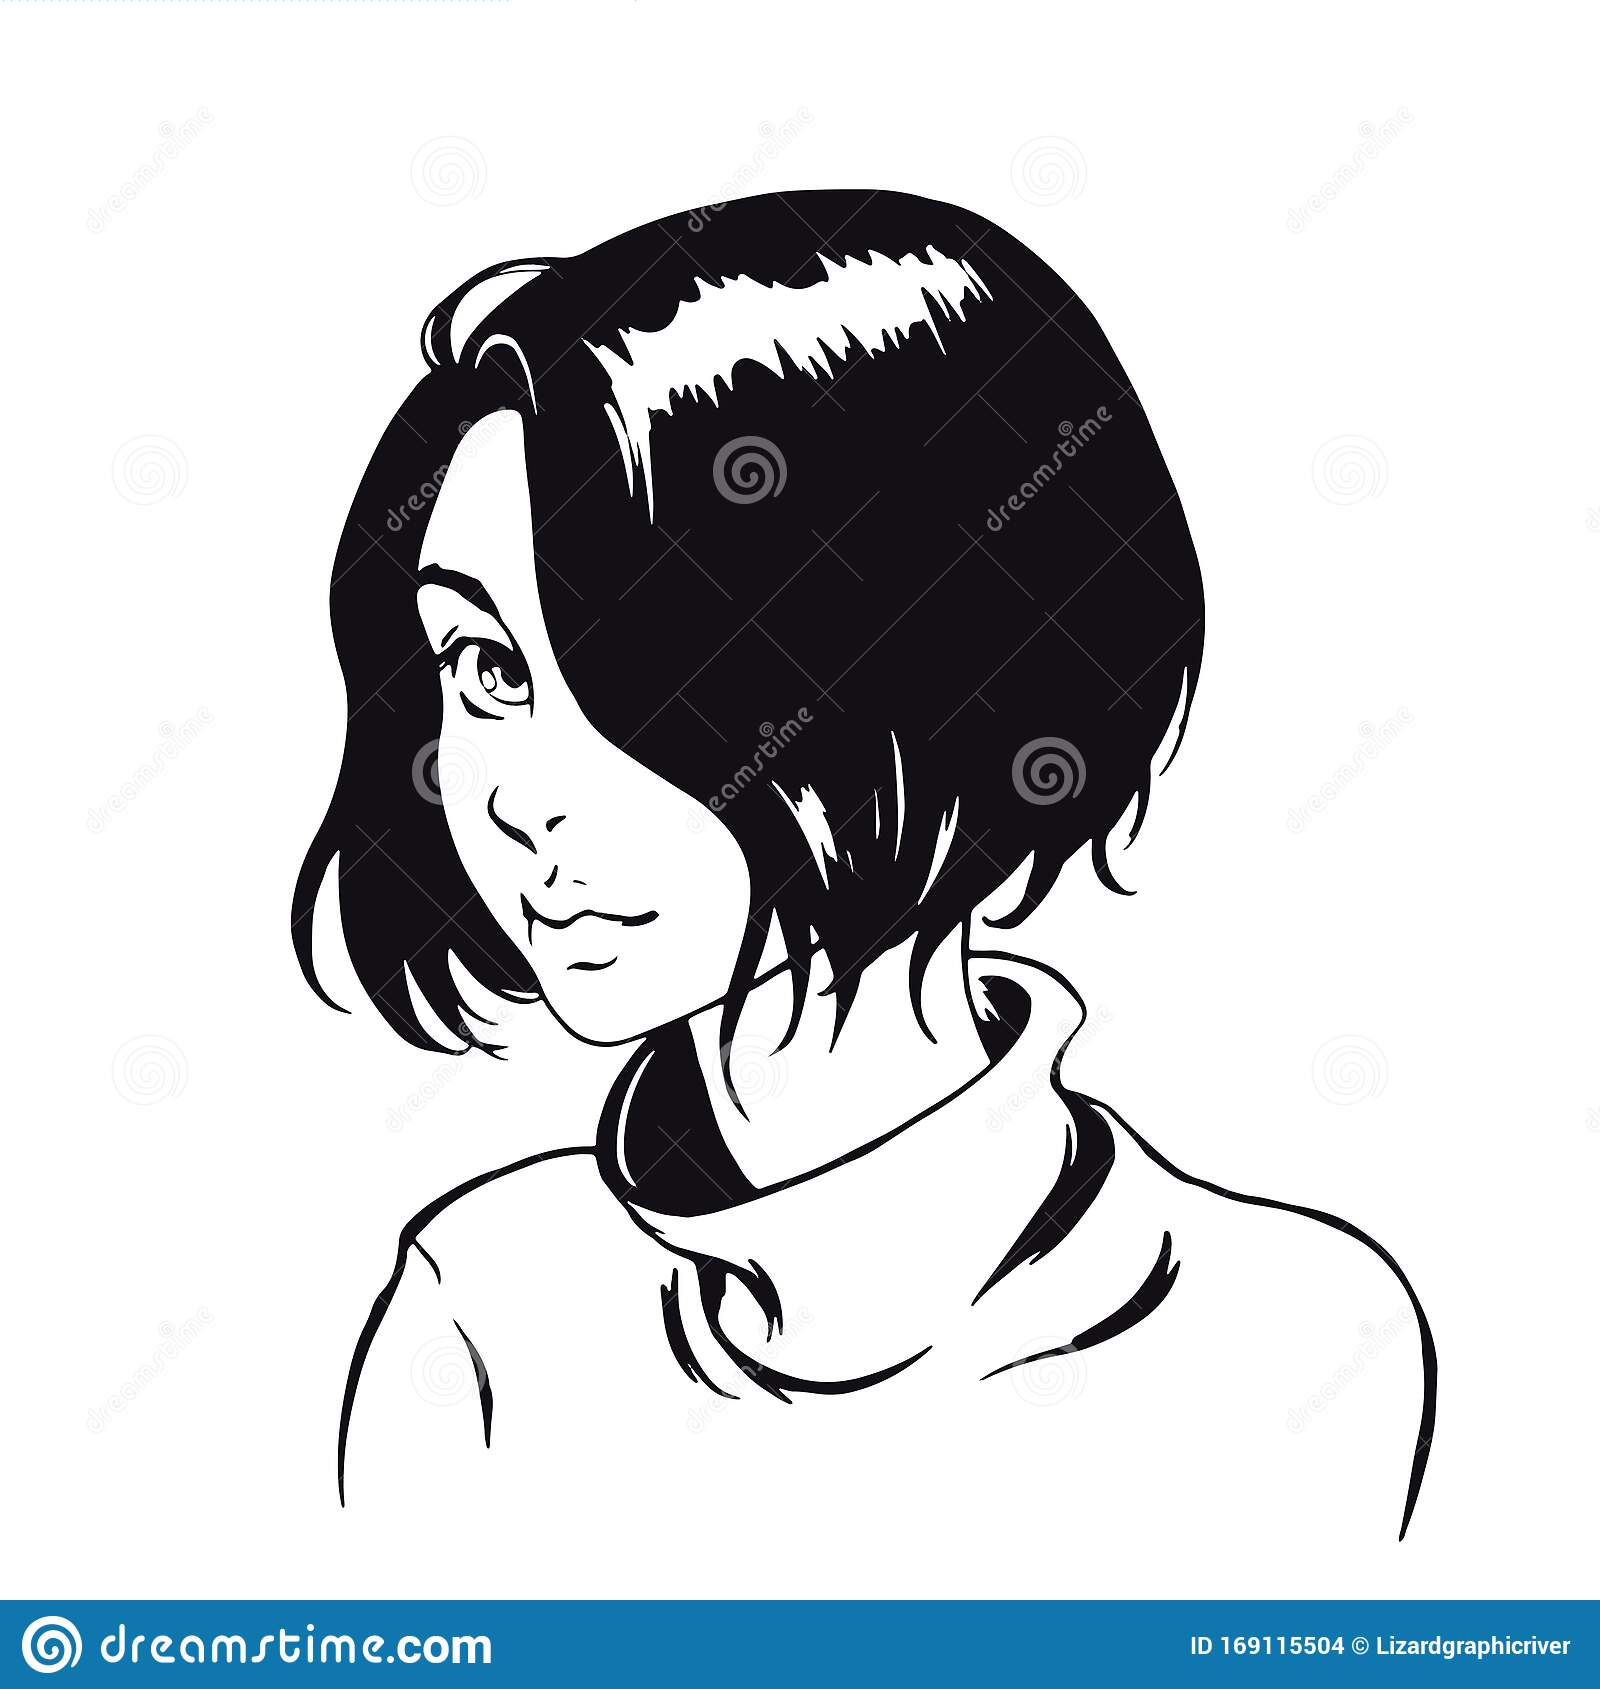 Comics Style Graphic Illustration Cute Anime Girl With Short Hair